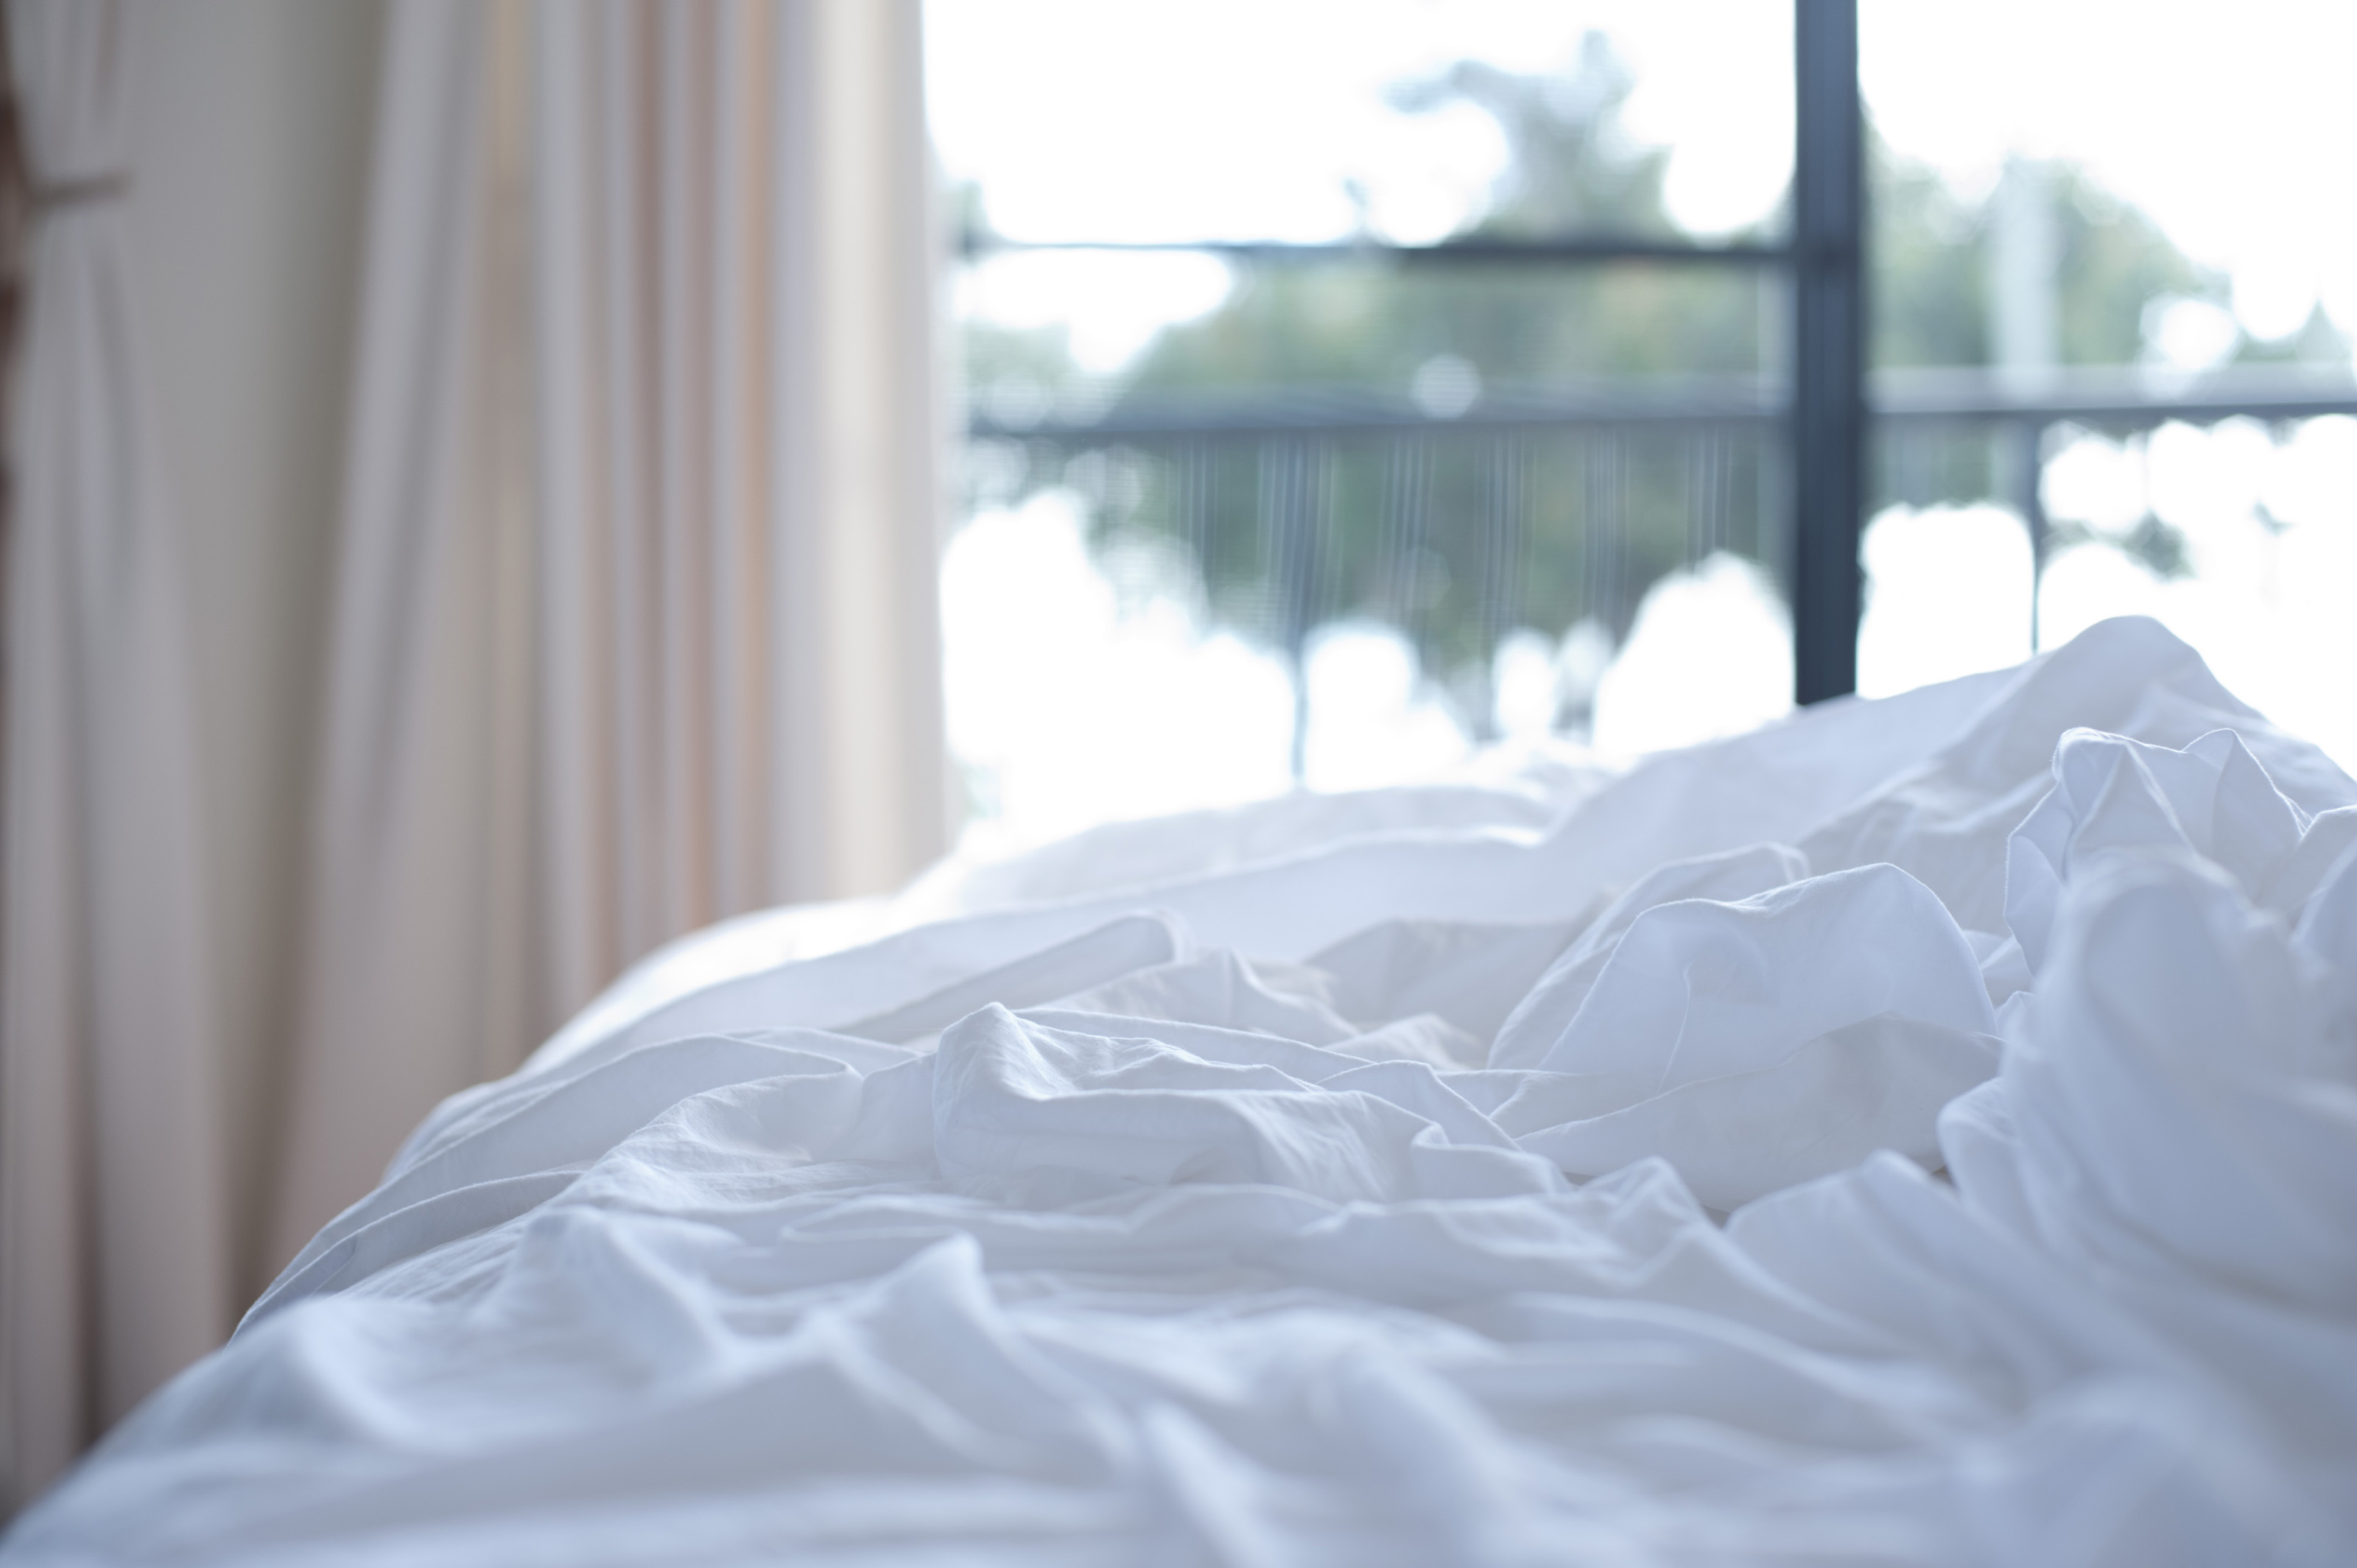 unmade bed side view. Unmade Bed With Messed Up White Linen In A Rumpled Heap And Daylight Streaming Side View D